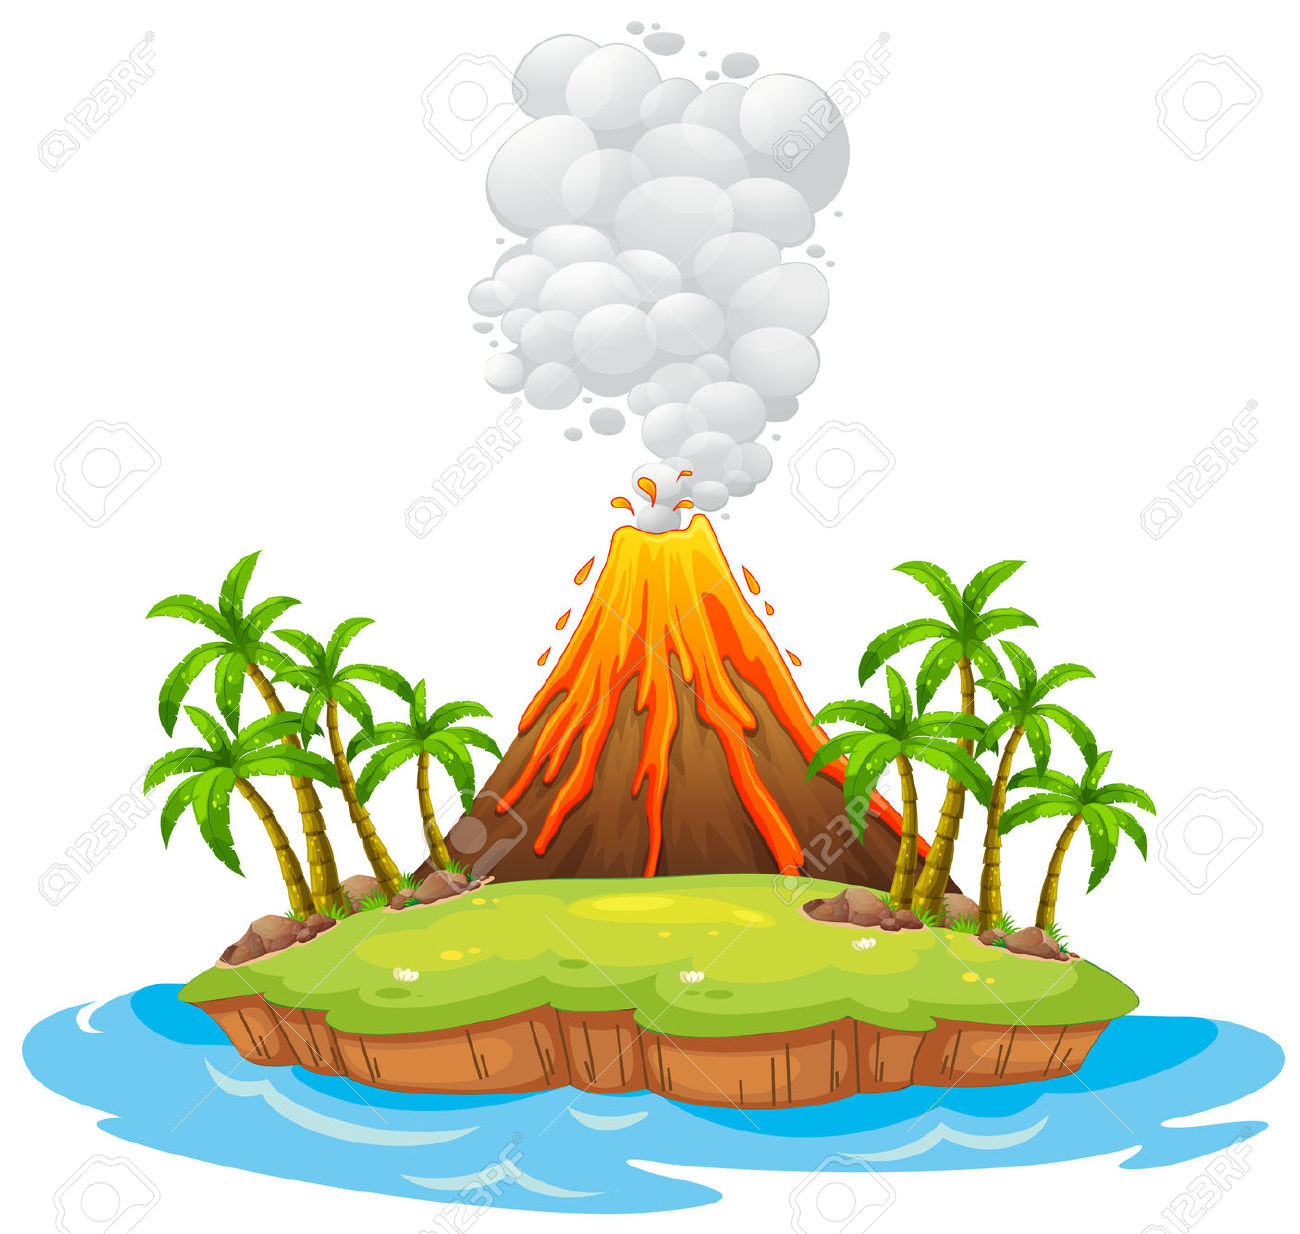 Volcano clipart volcano hawaii. Collection of high